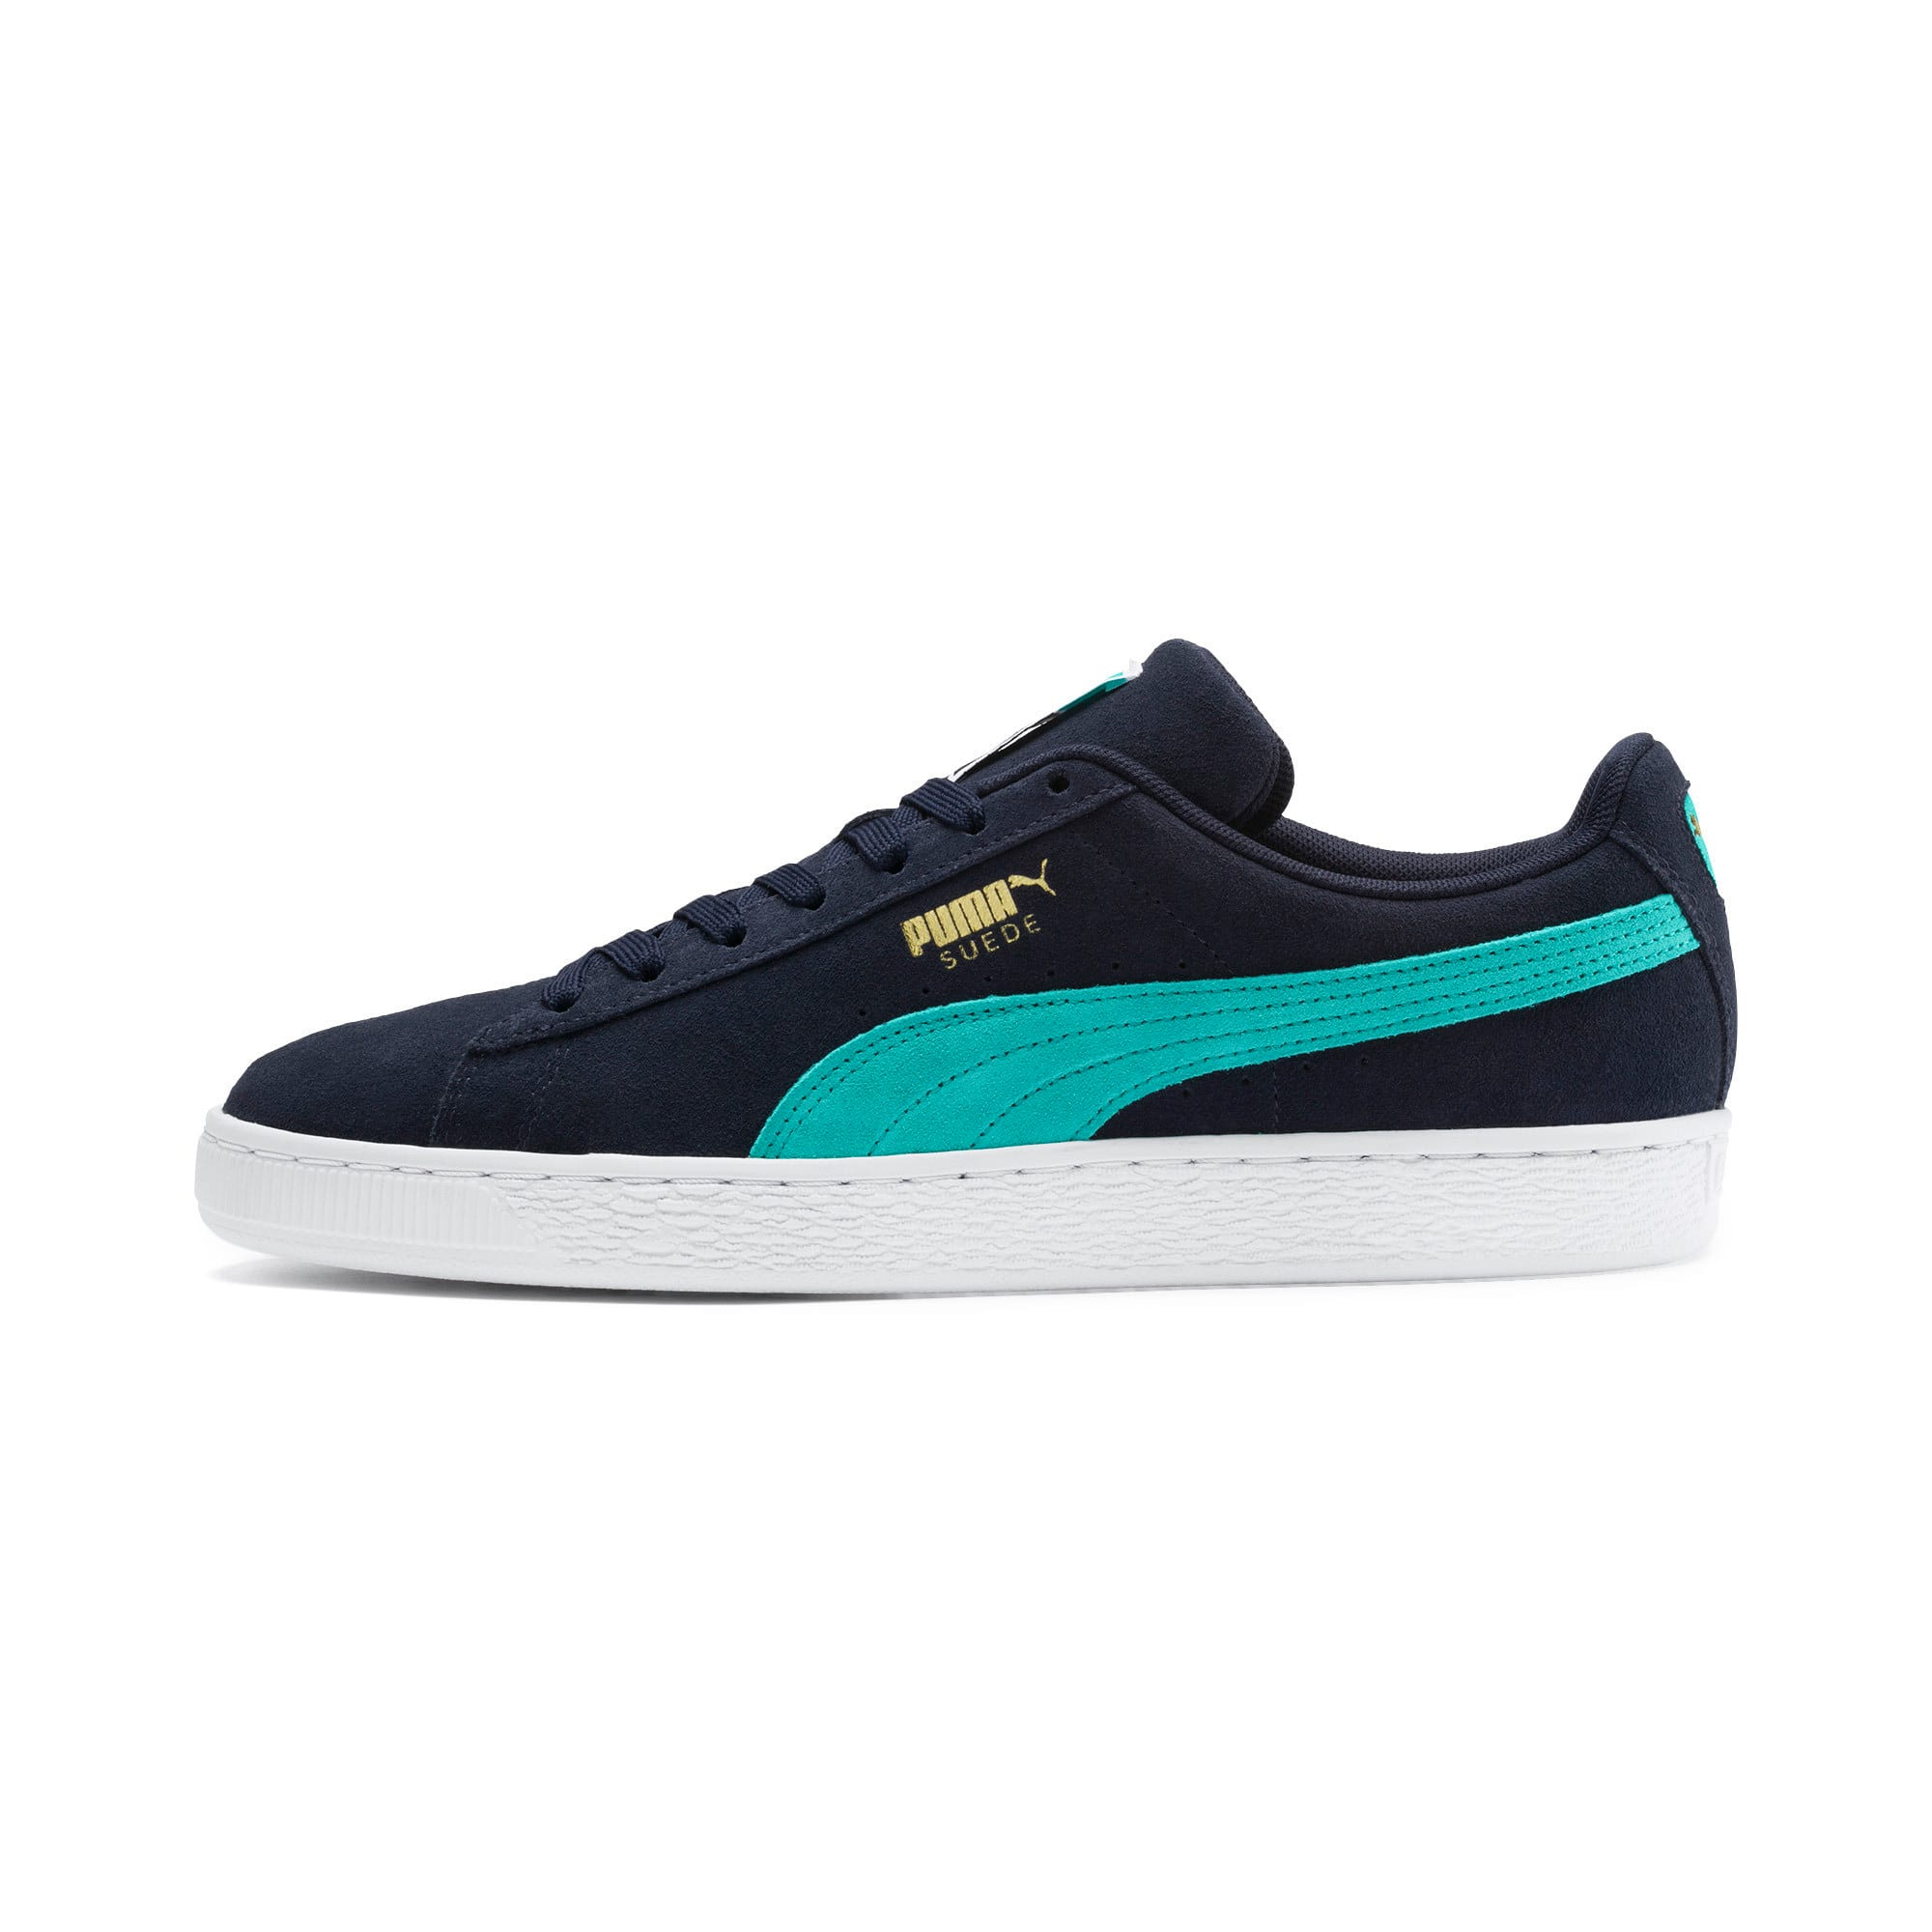 Thumbnail 1 of Suede Classic Sneakers, Peacoat-Blue Turquoise-P Wht, medium